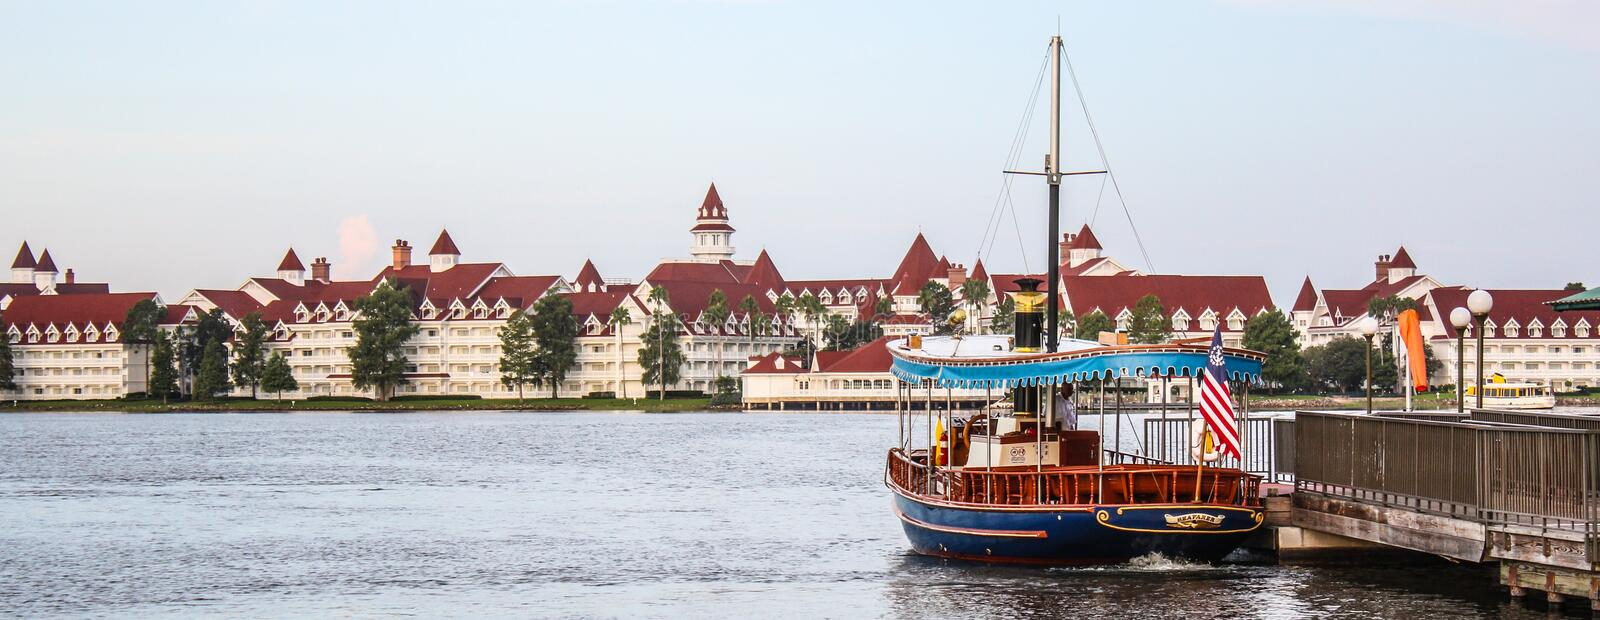 Disney's Grand Floridian Resort & Spa. View of Disney's Grand Floridian Resort & Spa across the water stock photo